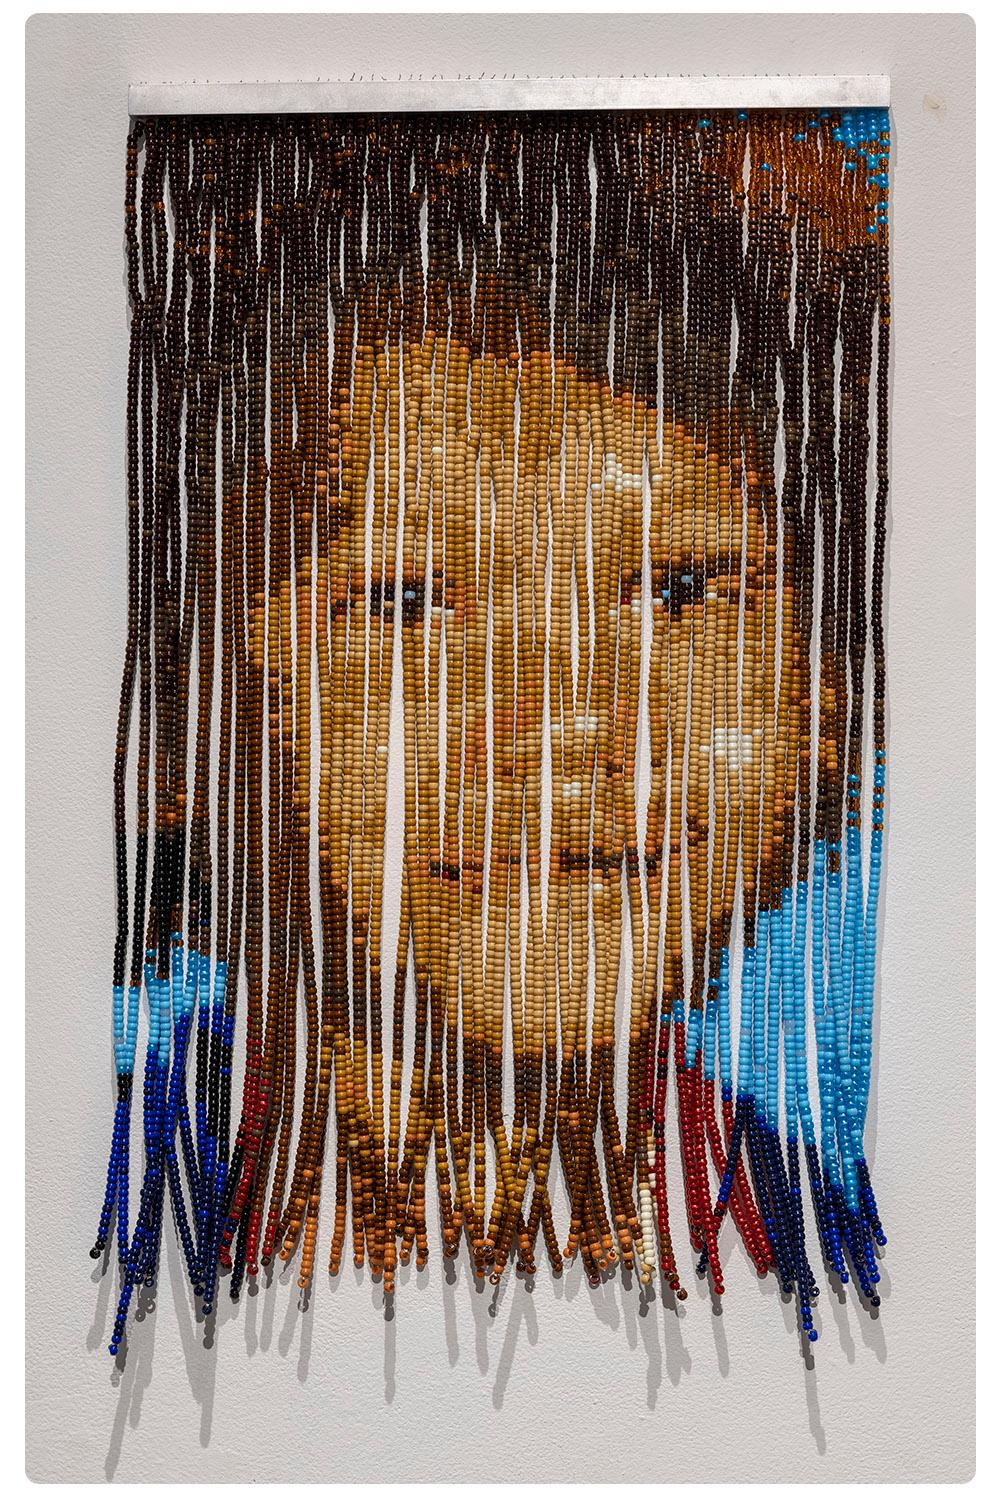 A portrait made out of beaded curtain